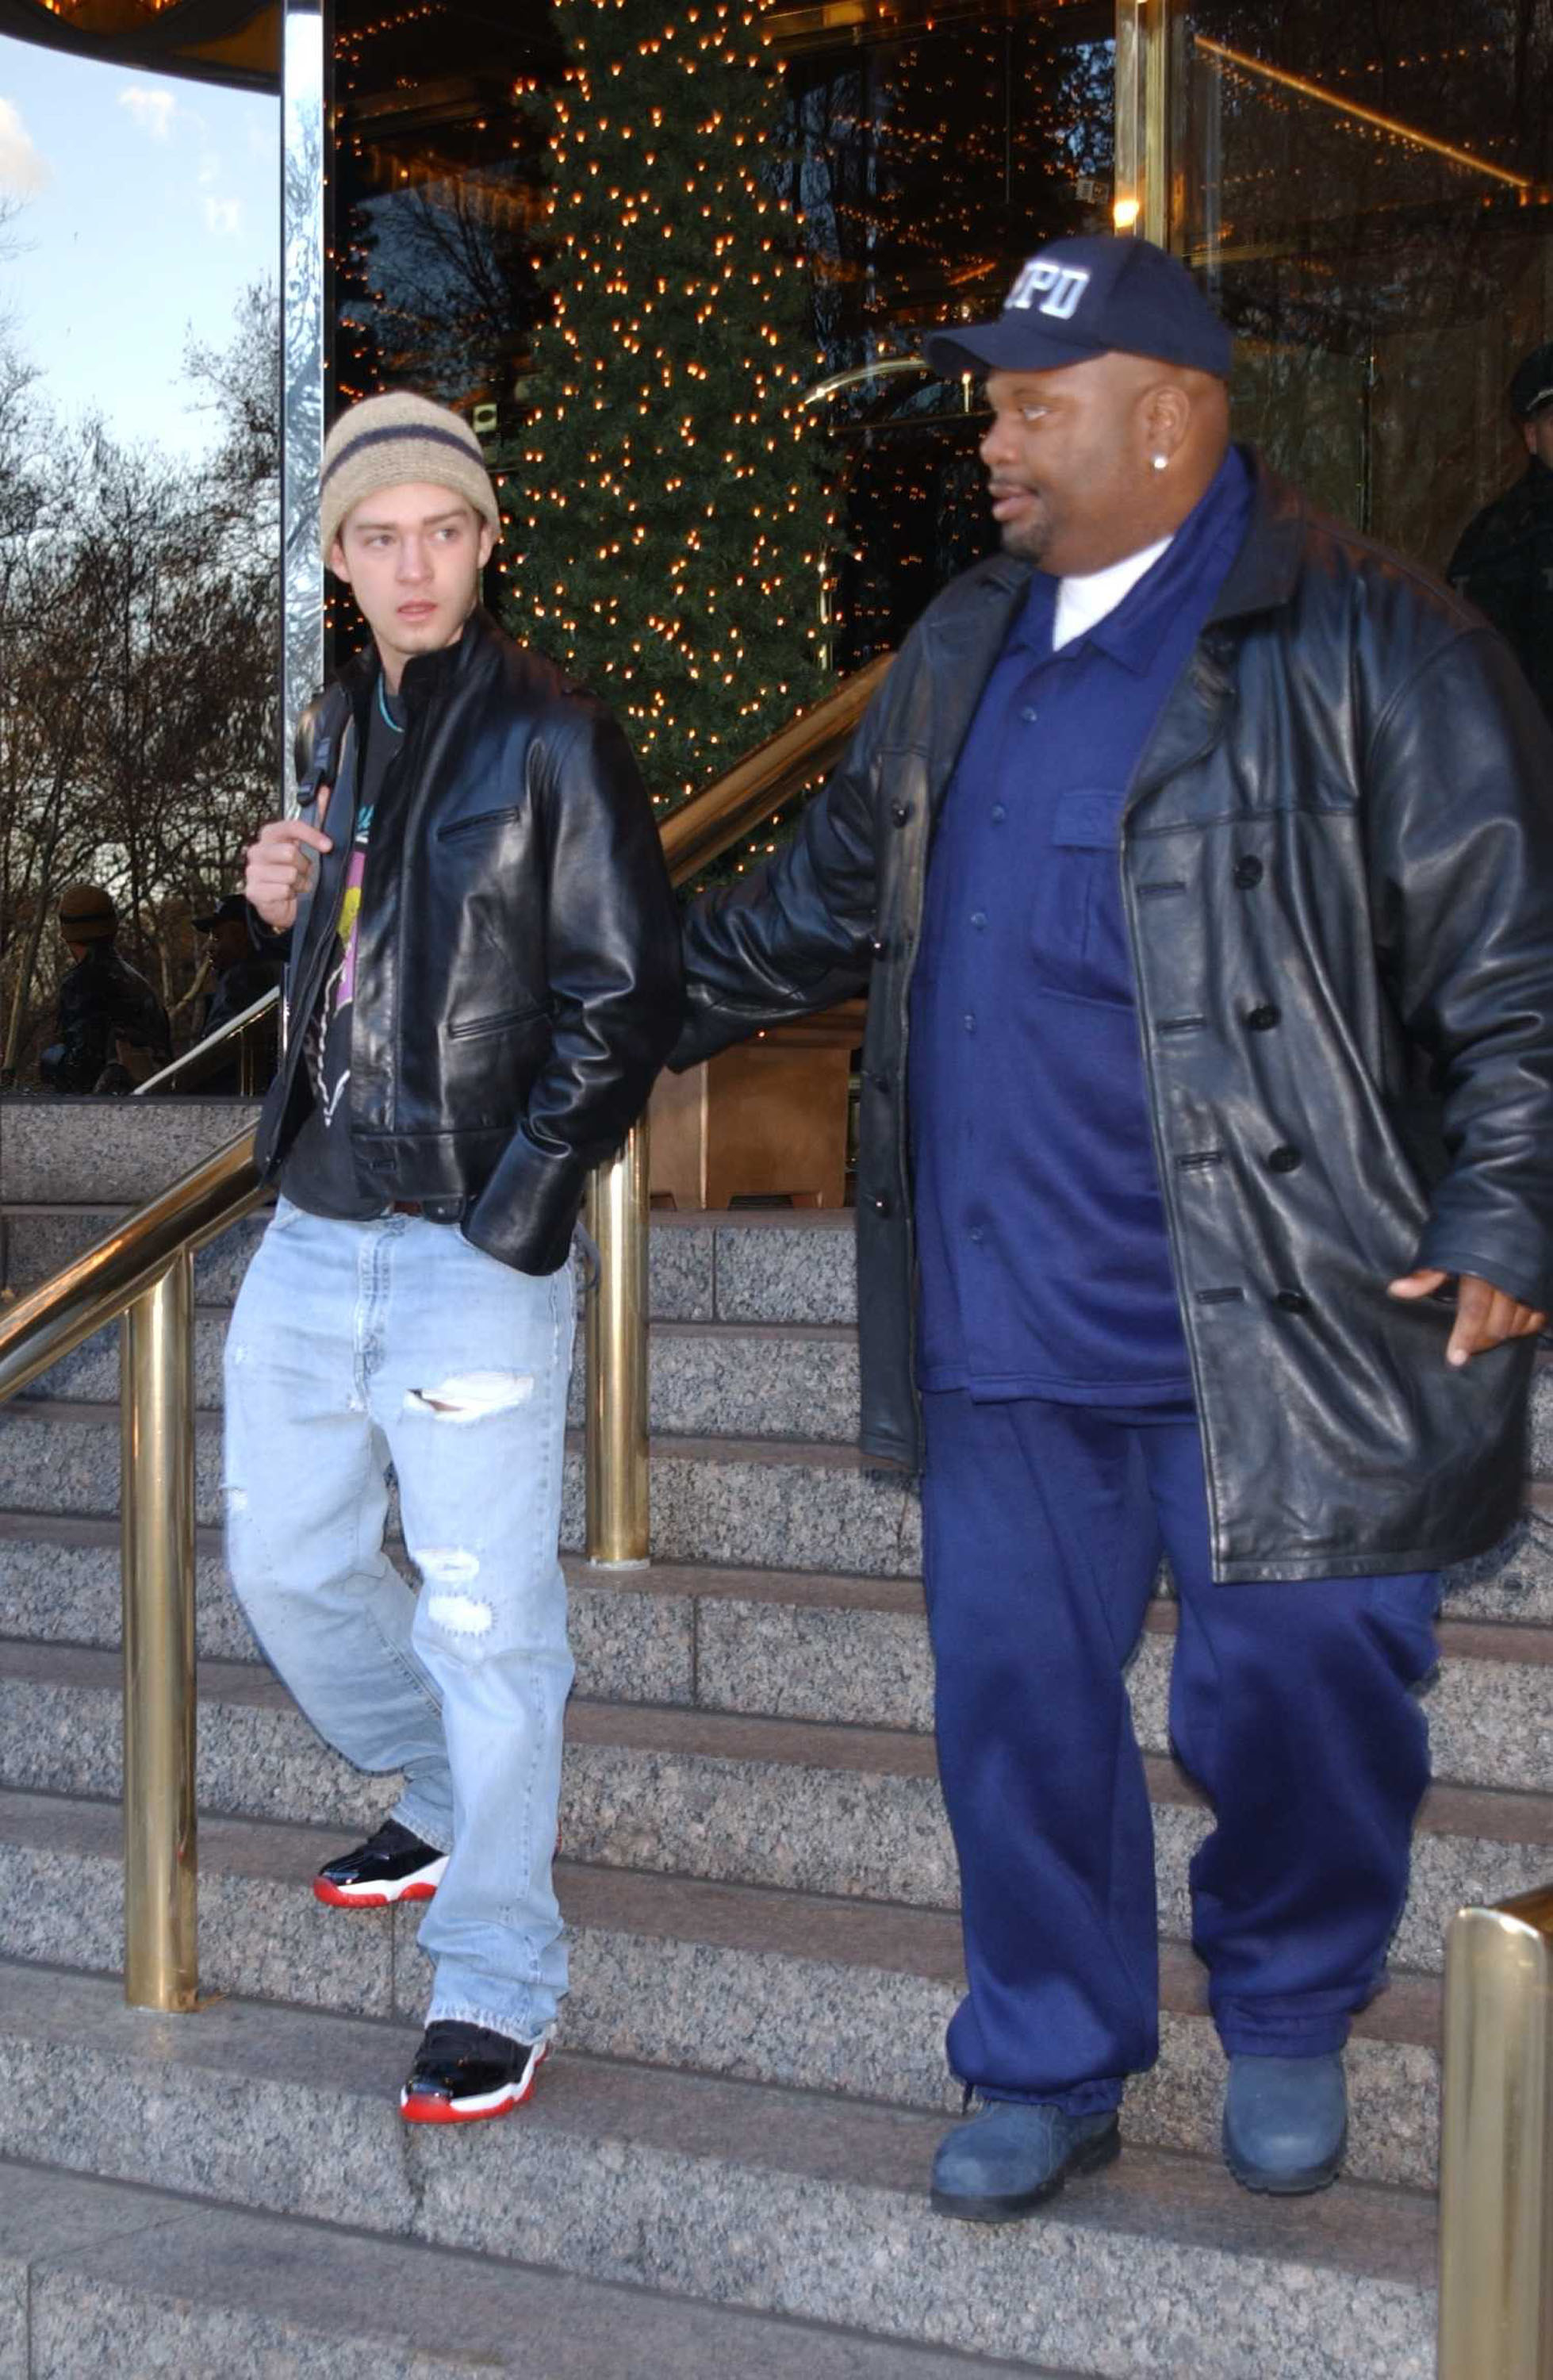 Justin walking out of a building wearing a beanie, leather jacket, and jeans